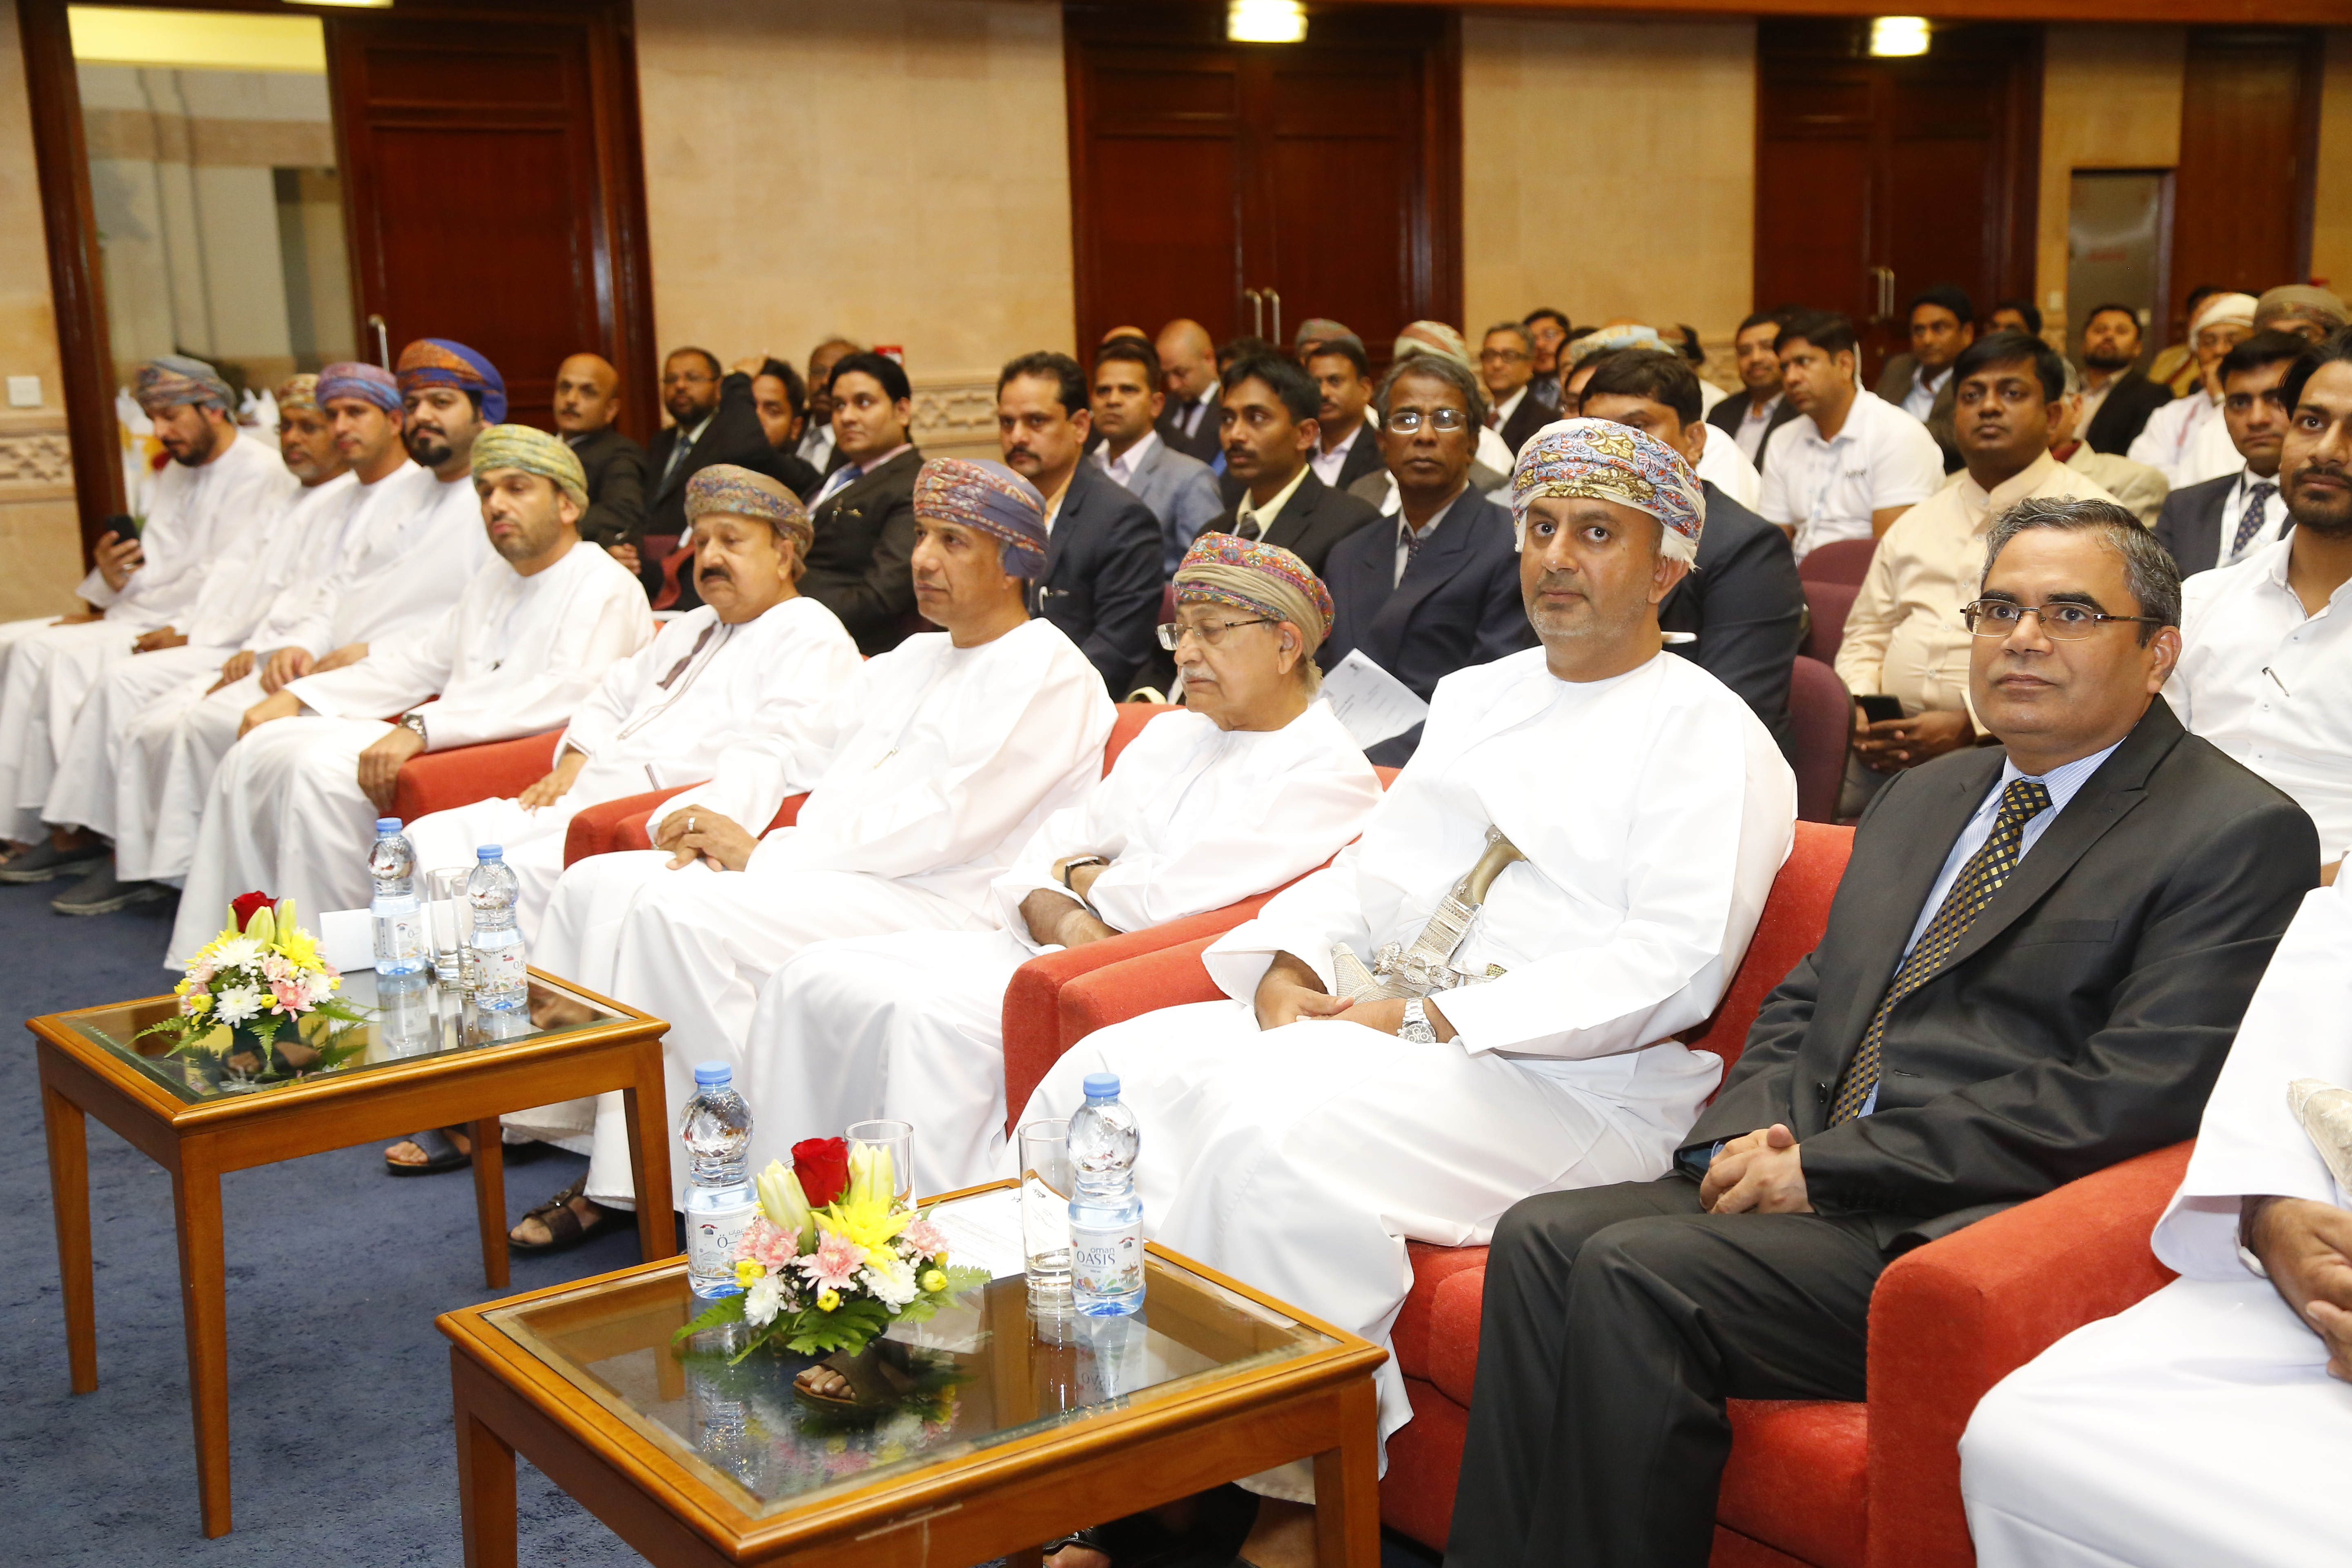 Oman plans to organise a major investment forum